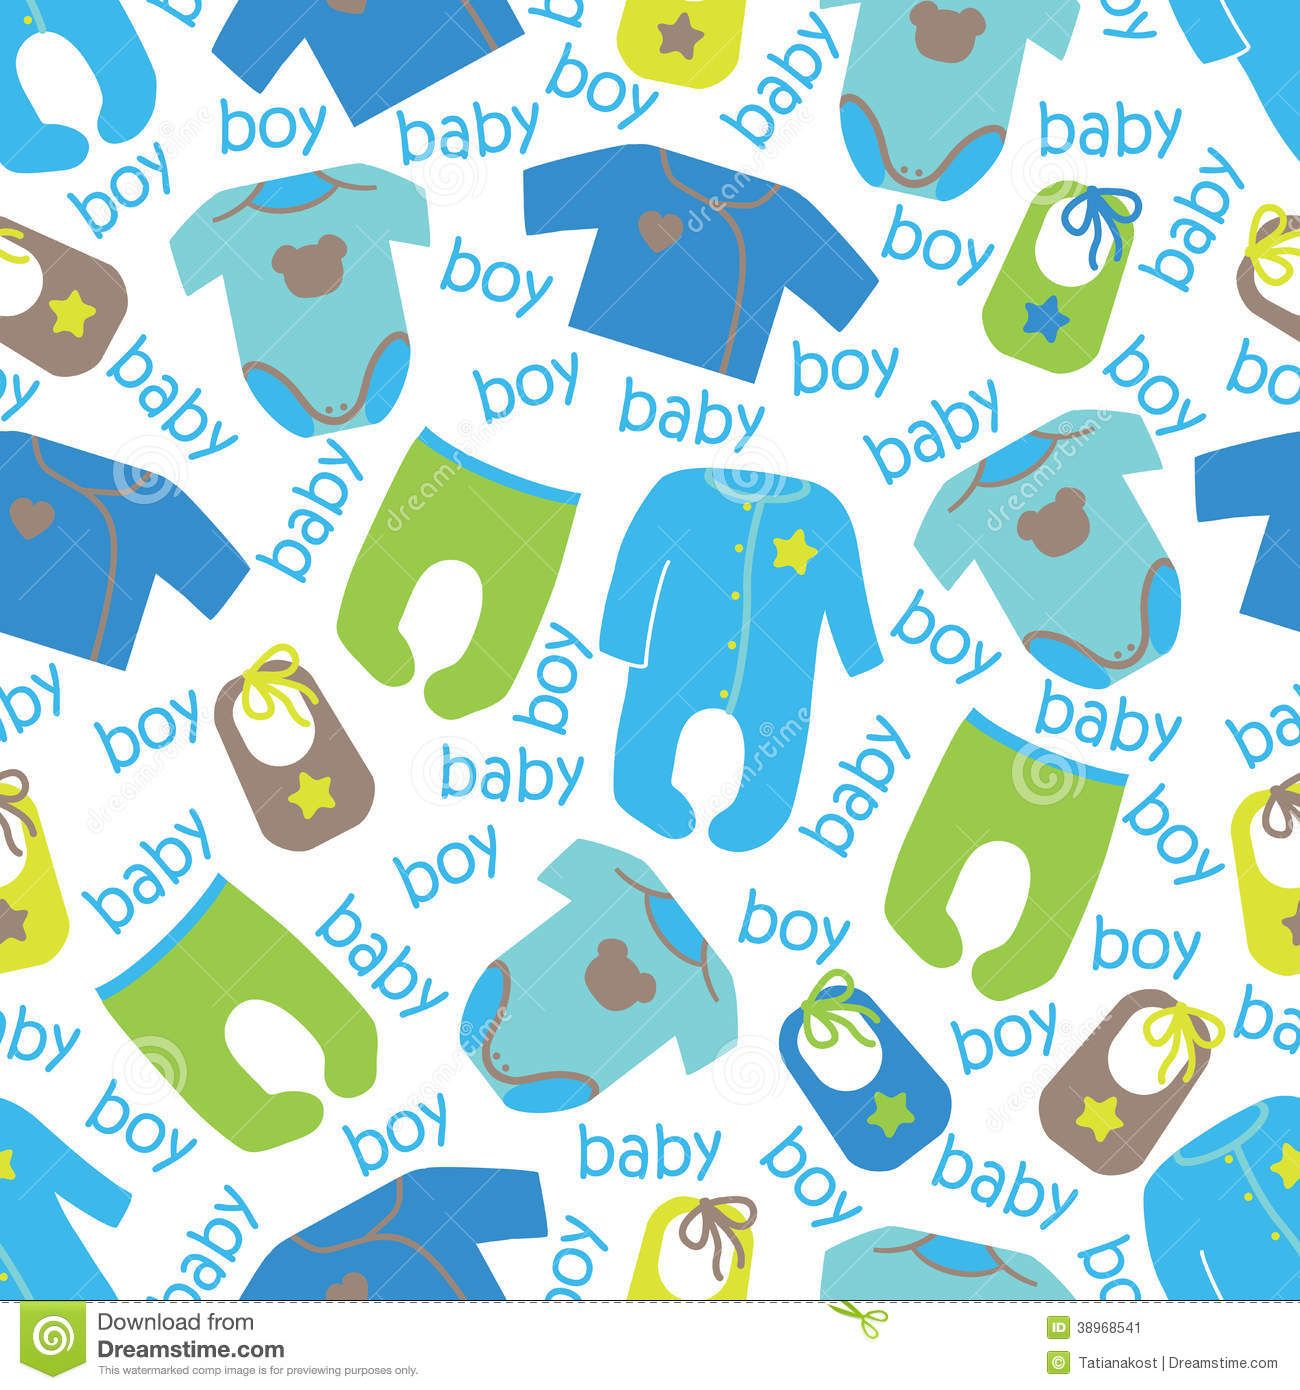 Baby boy background wallpaper baby boy background images baby boy - Search Results For Boys Wallpaper Pattern Adorable Wallpapers